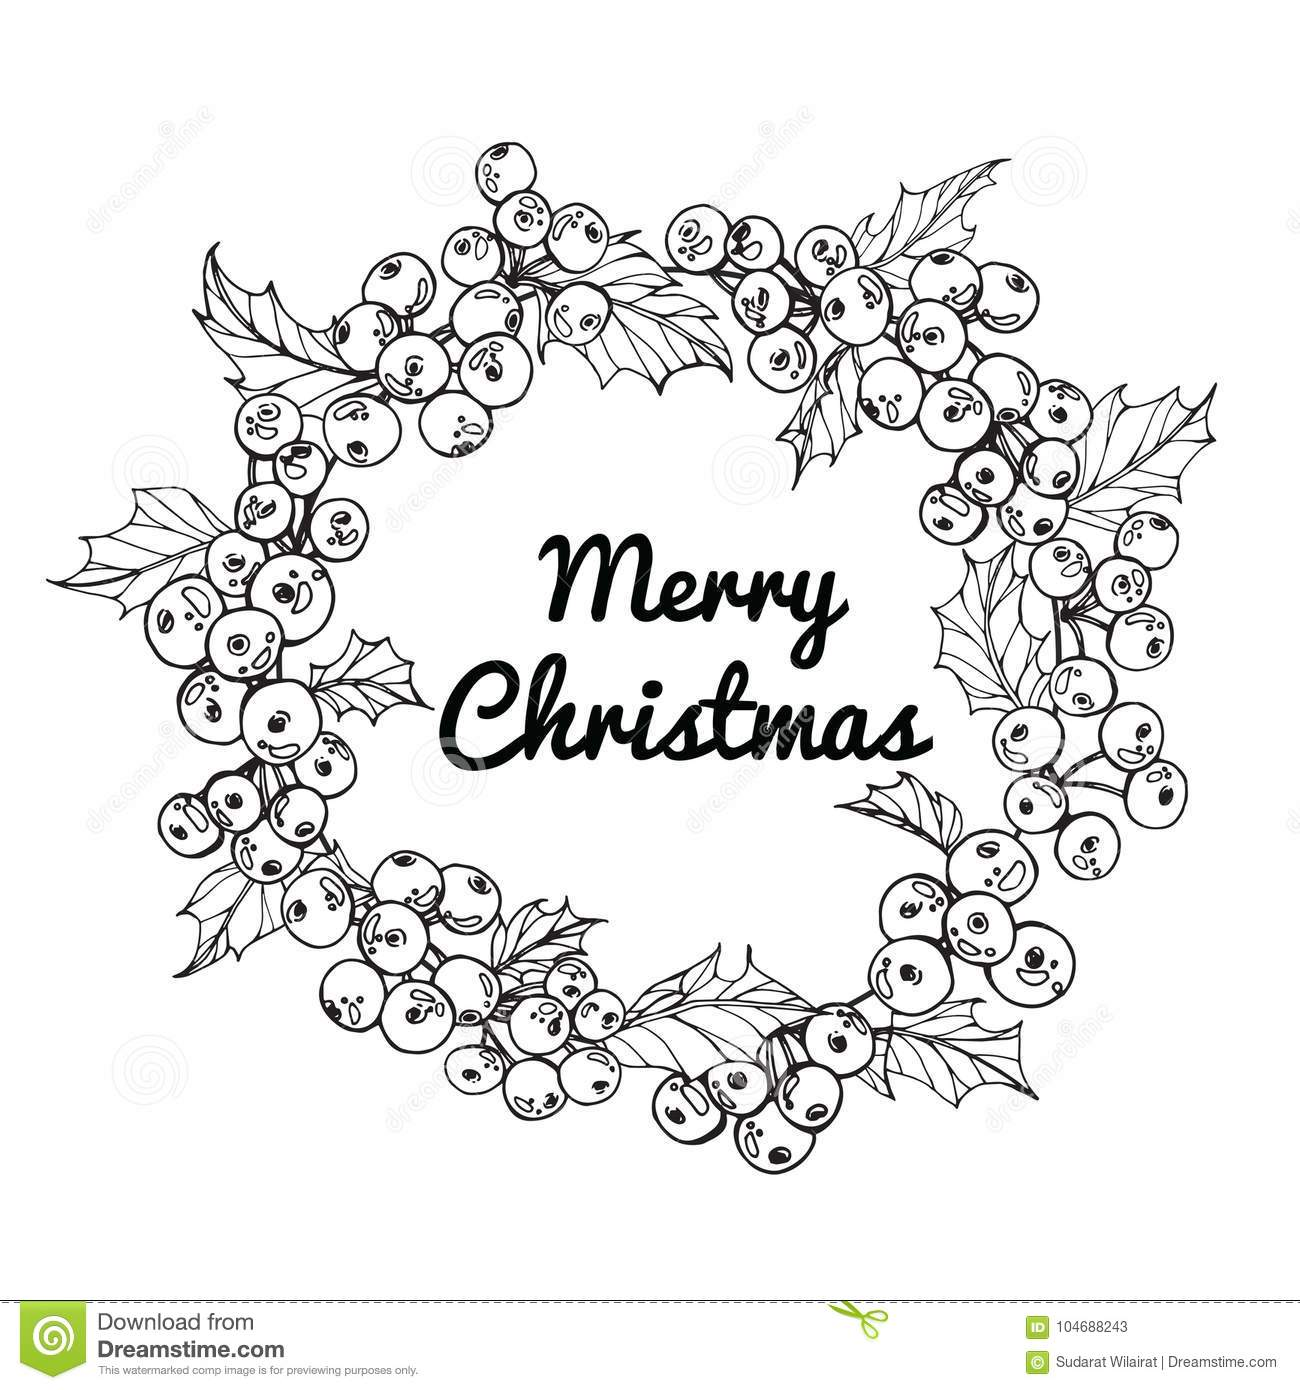 Christmas Flower Line Drawing : Wreath flower drawing illustration for merry christmas`day